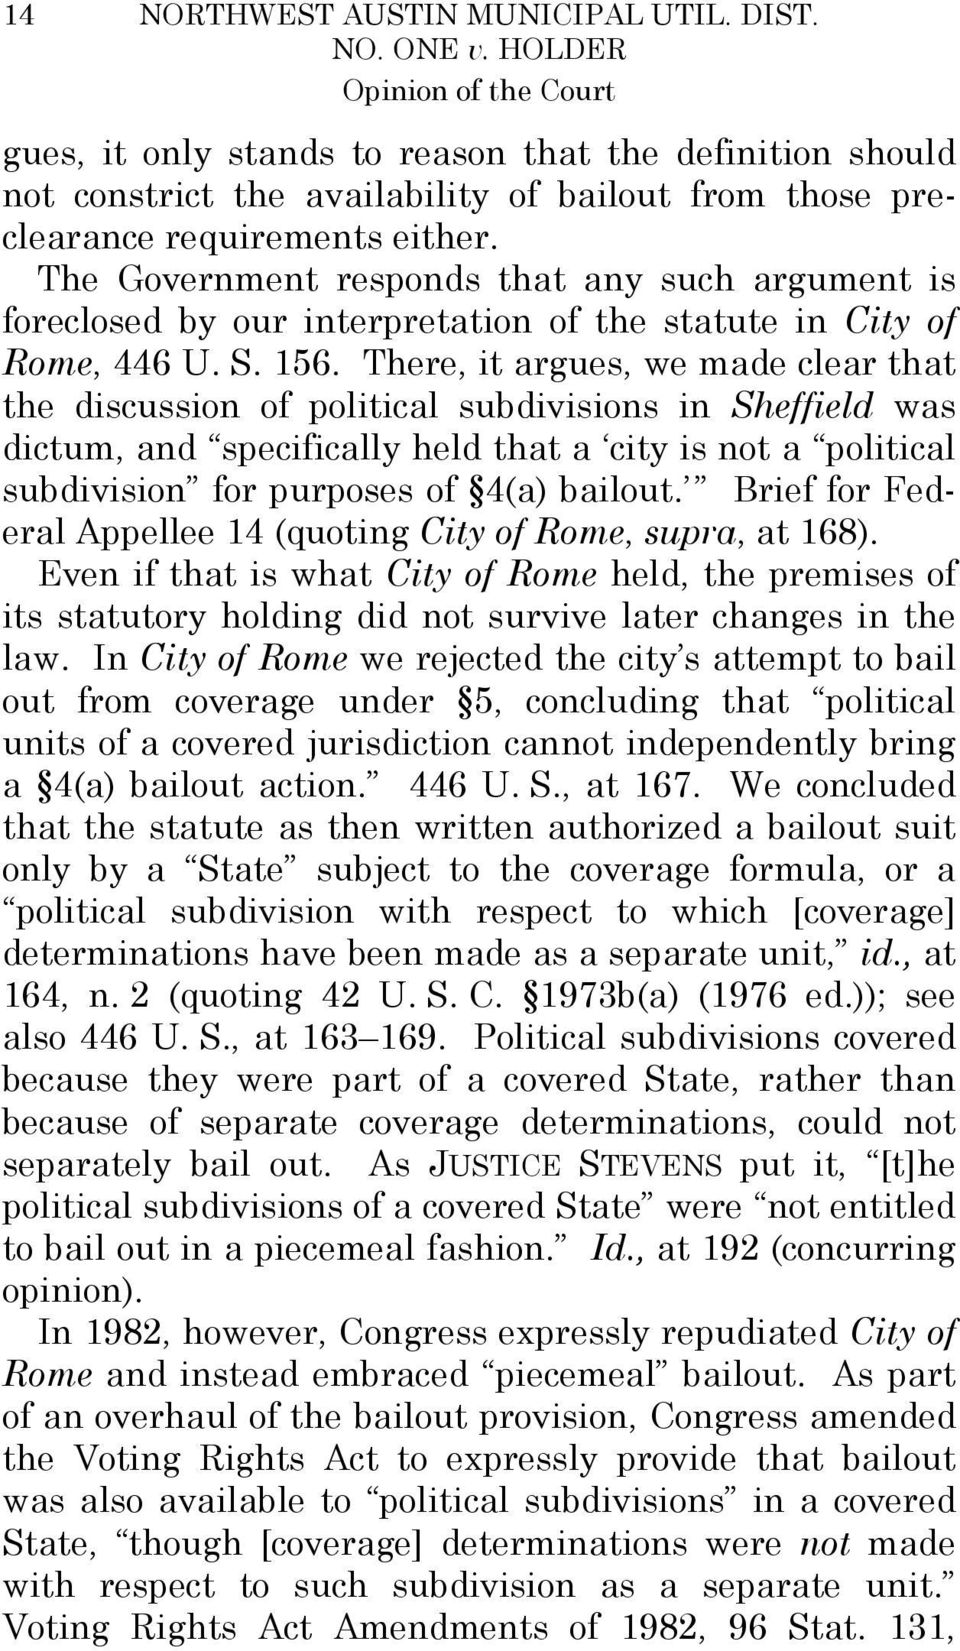 The Government responds that any such argument is foreclosed by our interpretation of the statute in City of Rome, 446 U. S. 156.